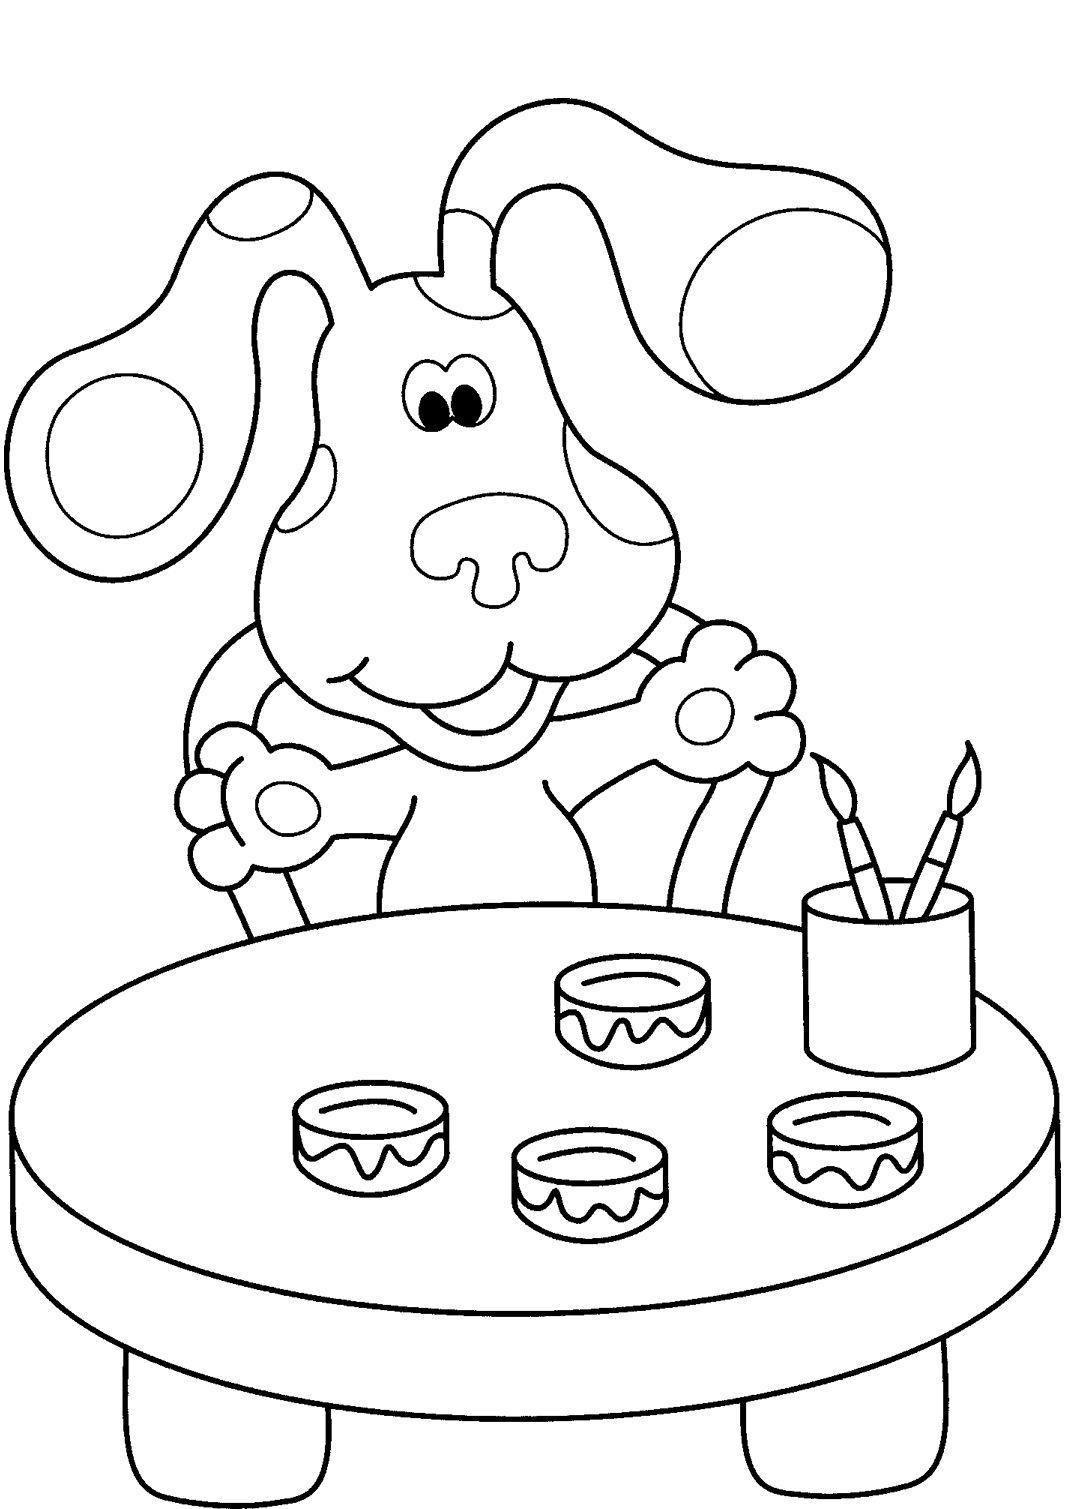 Painter Blues Clues Coloring Pages